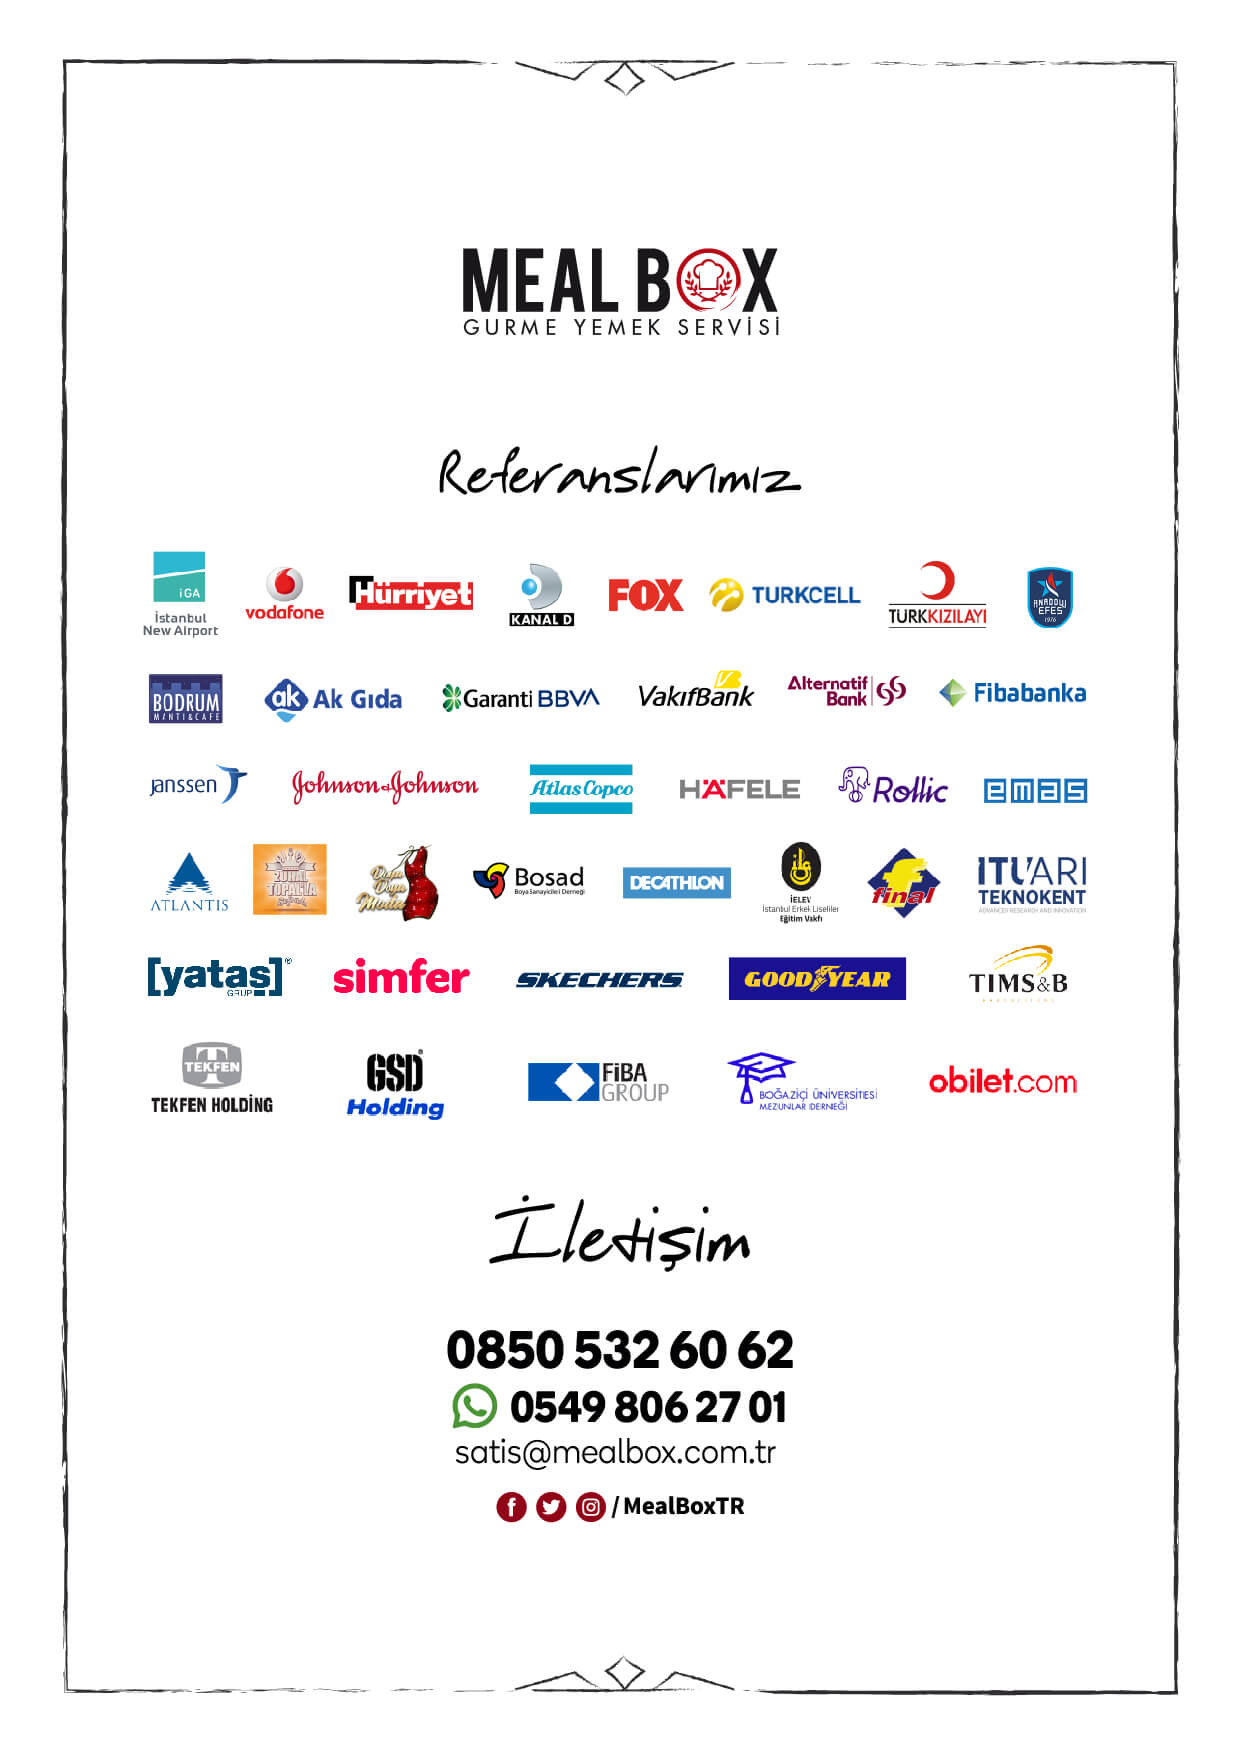 Meal Box Menüsü